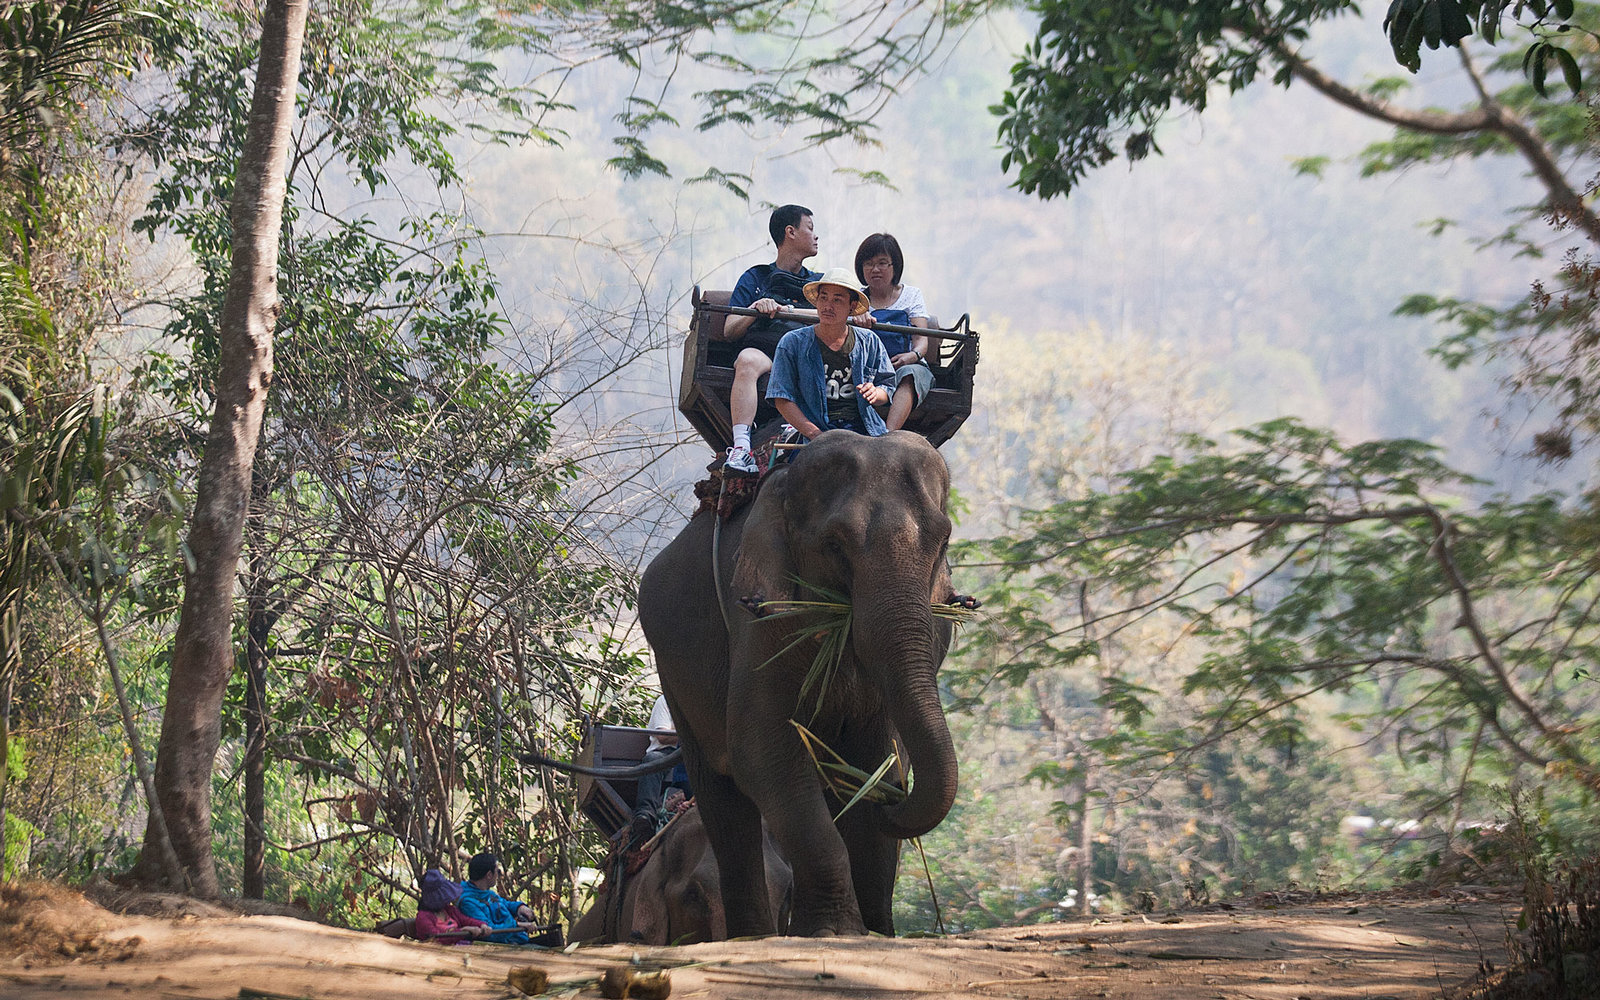 Sixth Tour Company Agrees To Stop Elephant Rides After